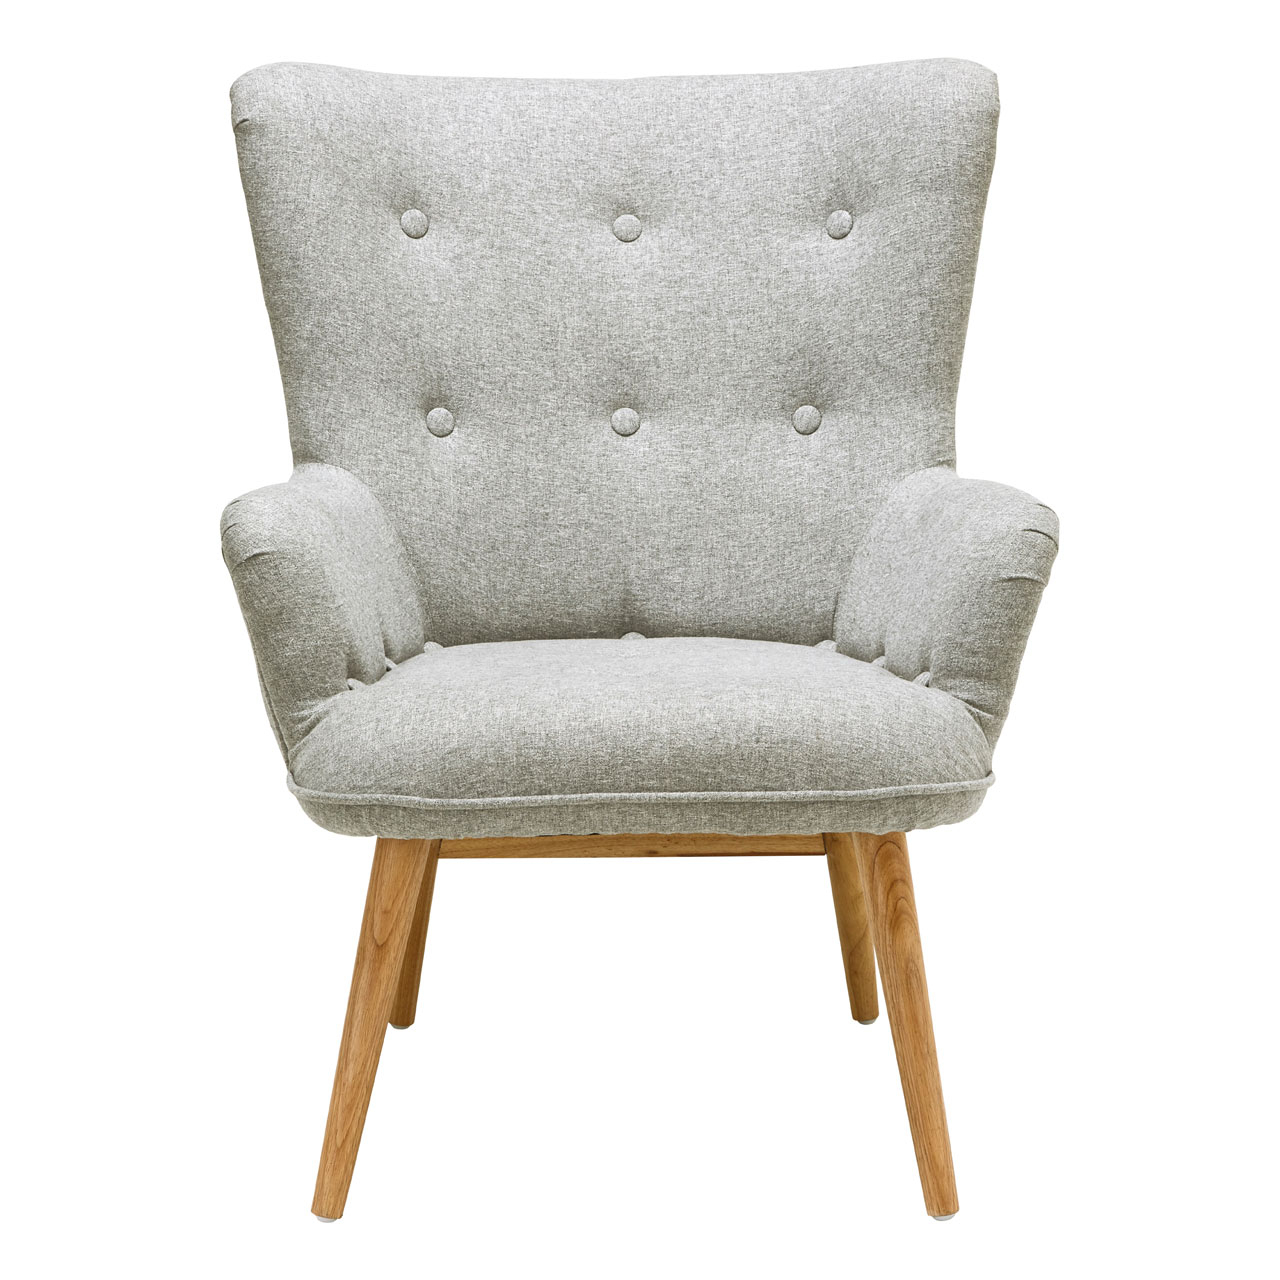 Details About Bergen Armchair Grey Polyester Natural Wood Legs Sofa Lounge Chair Furniture Within Best And Newest Leia Polyester Armchairs (View 15 of 20)